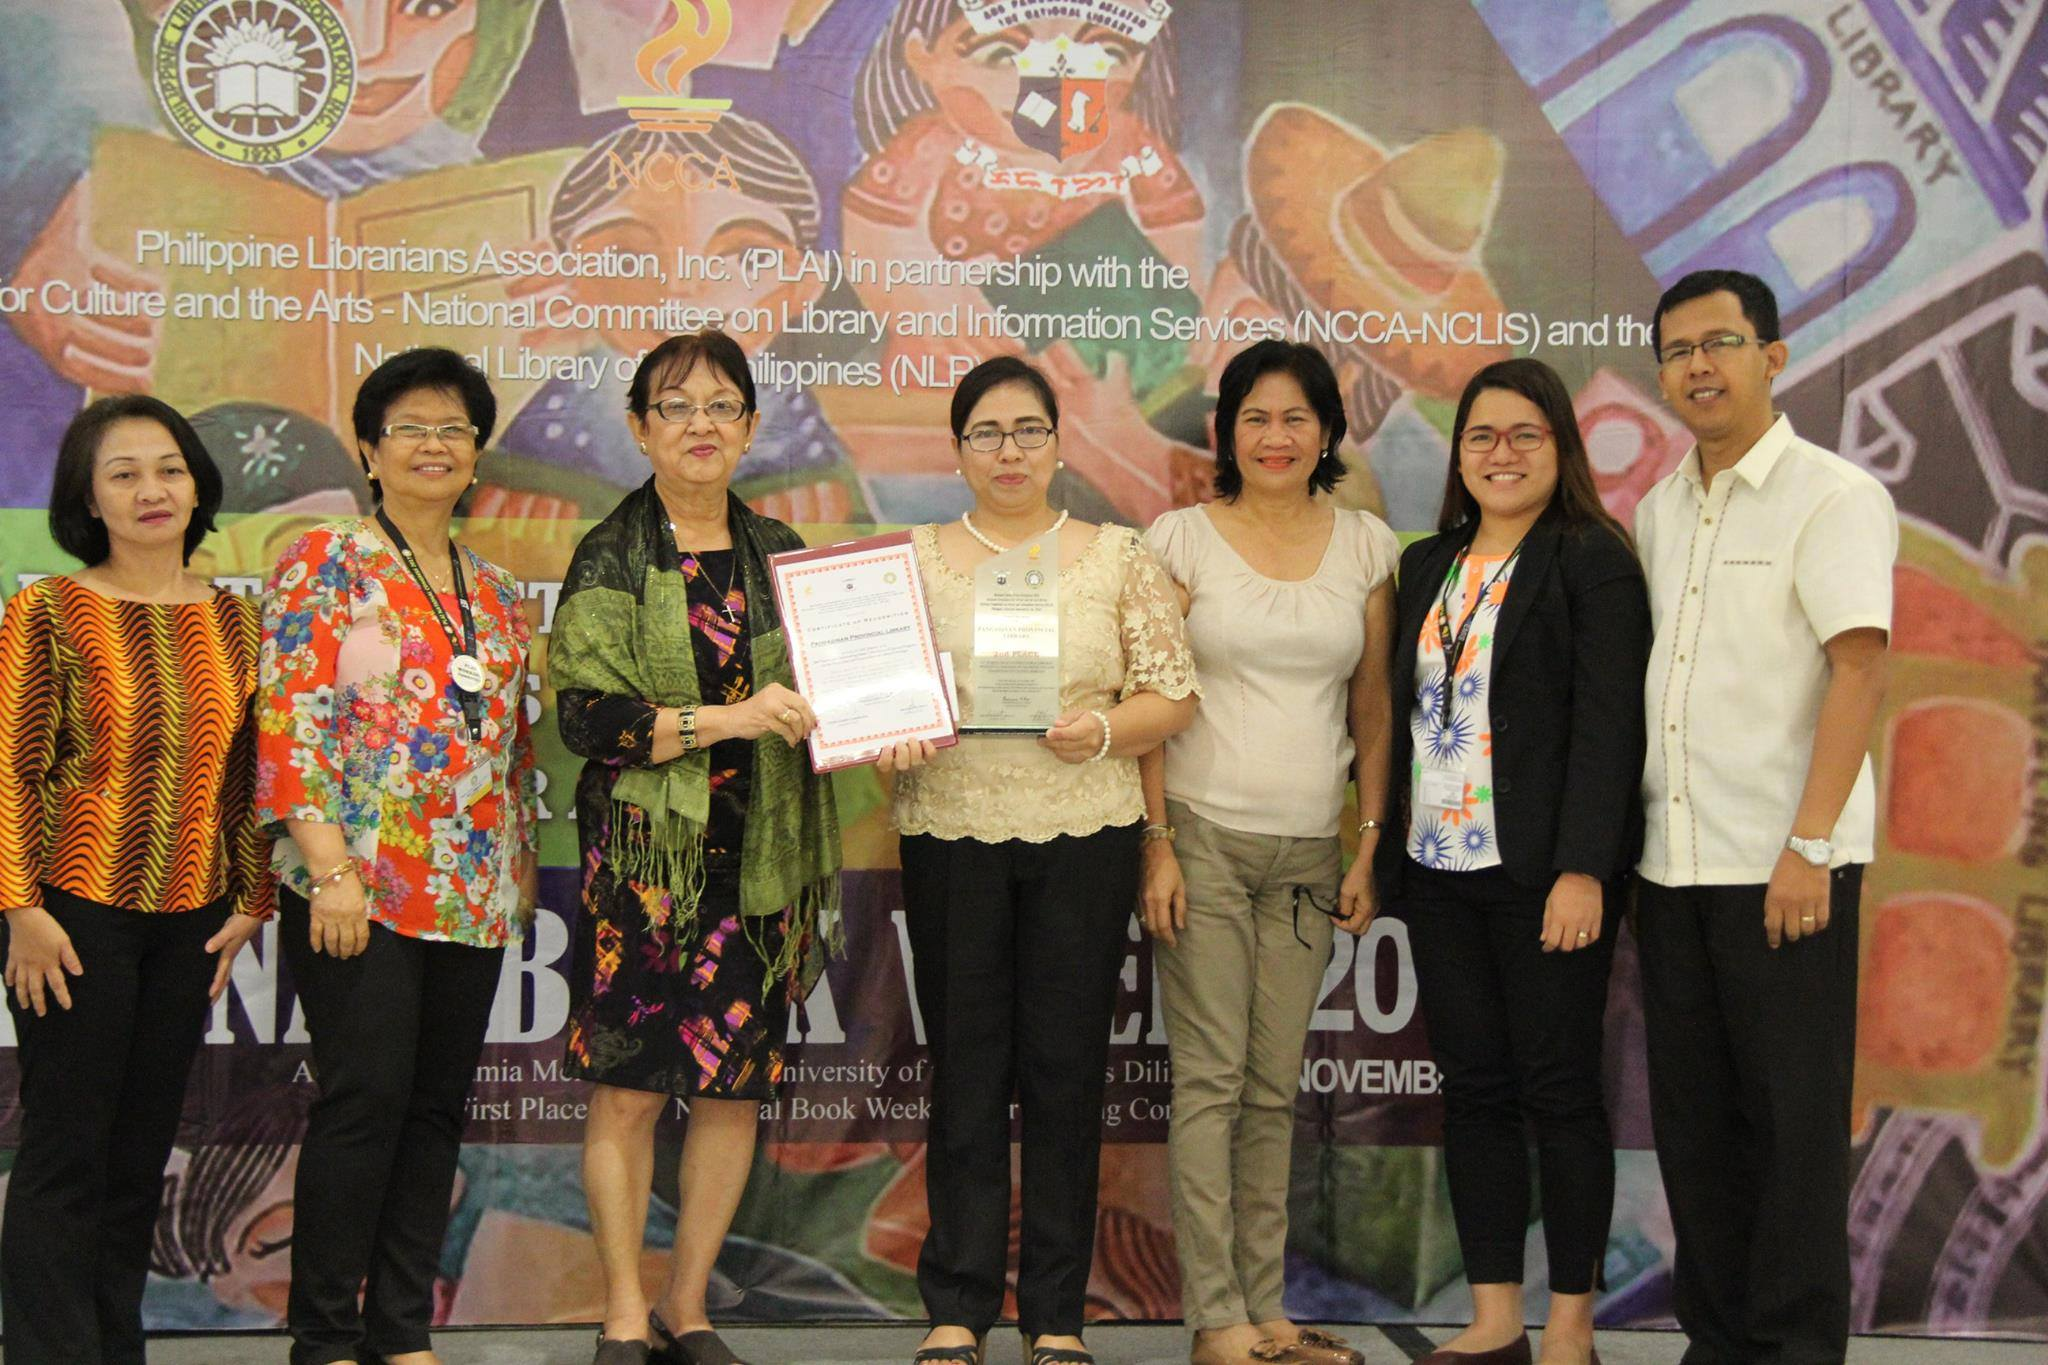 The Pangasinan Provincial Library bags the second place in the national search outstanding public libraries with special programs on the protection and preservation of cultural heritage